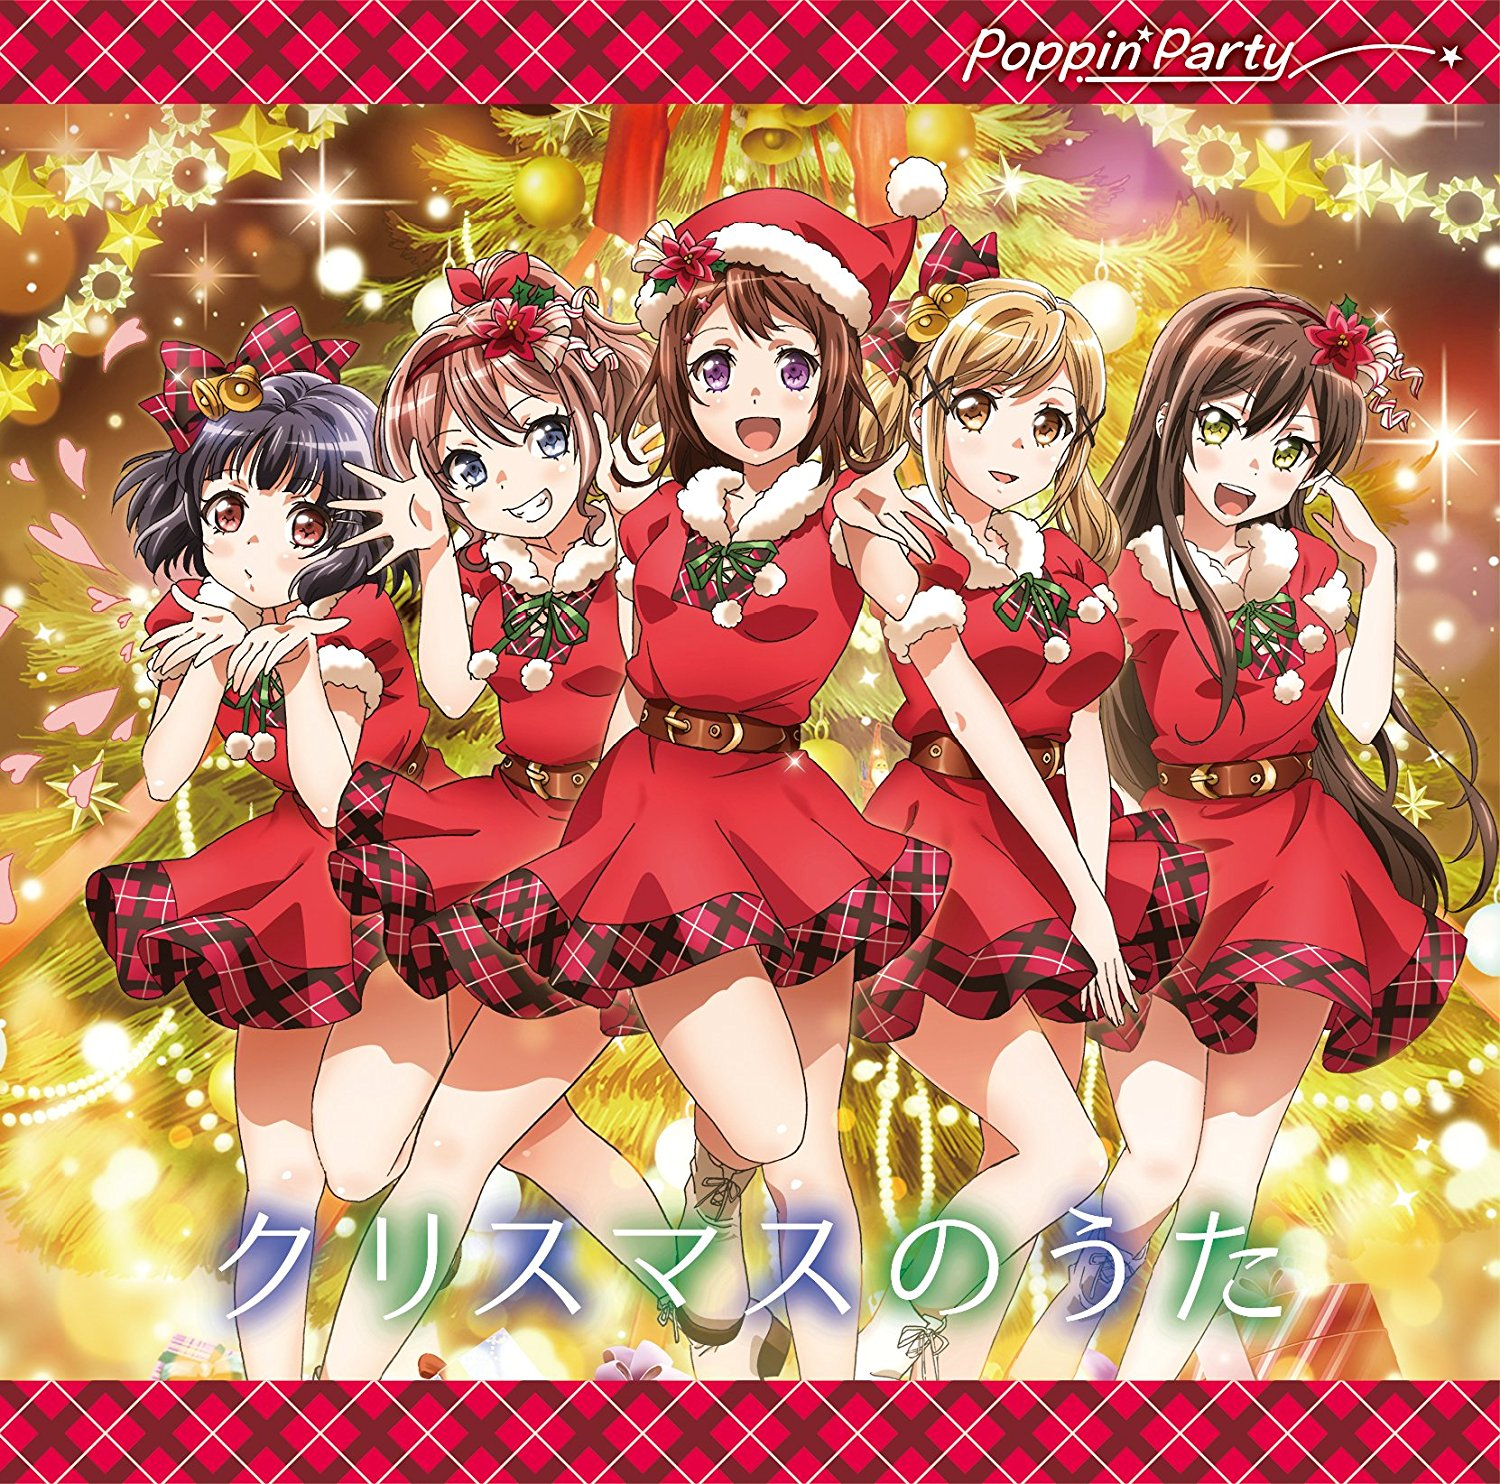 [TOP1] BanG Dream!: Poppin'Party – Christmas no Uta